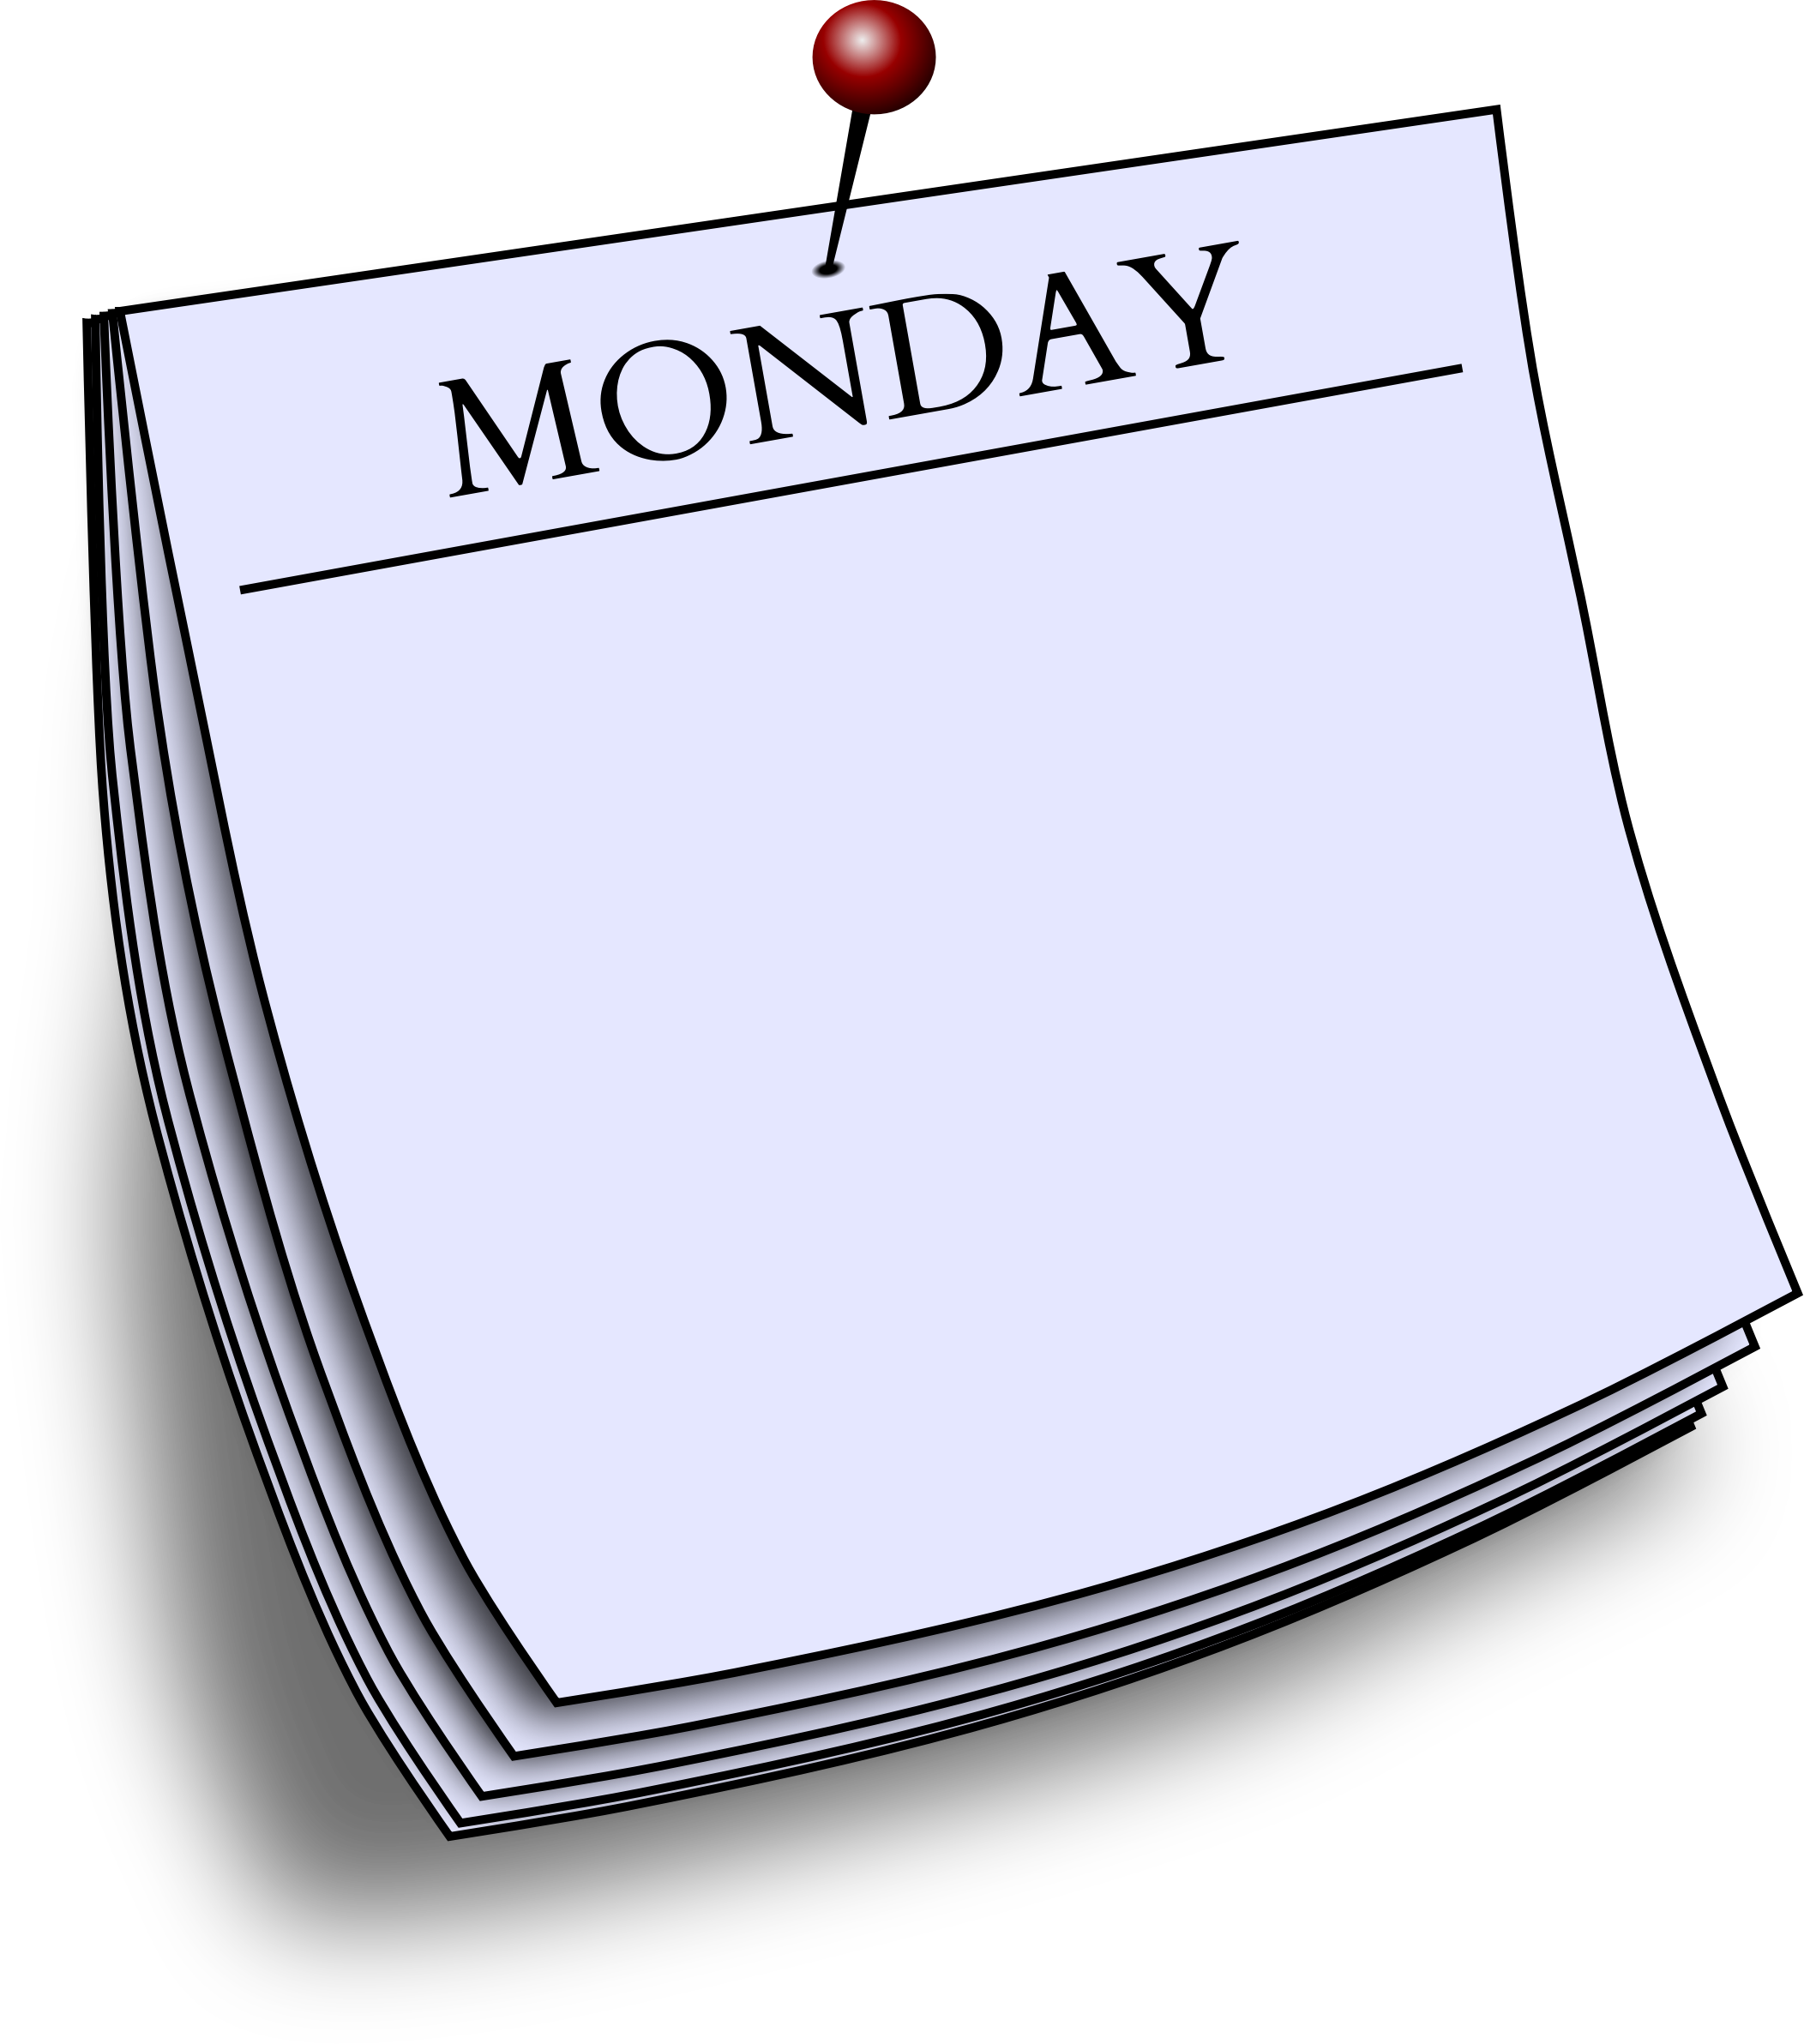 Daily note big image. Monday clipart